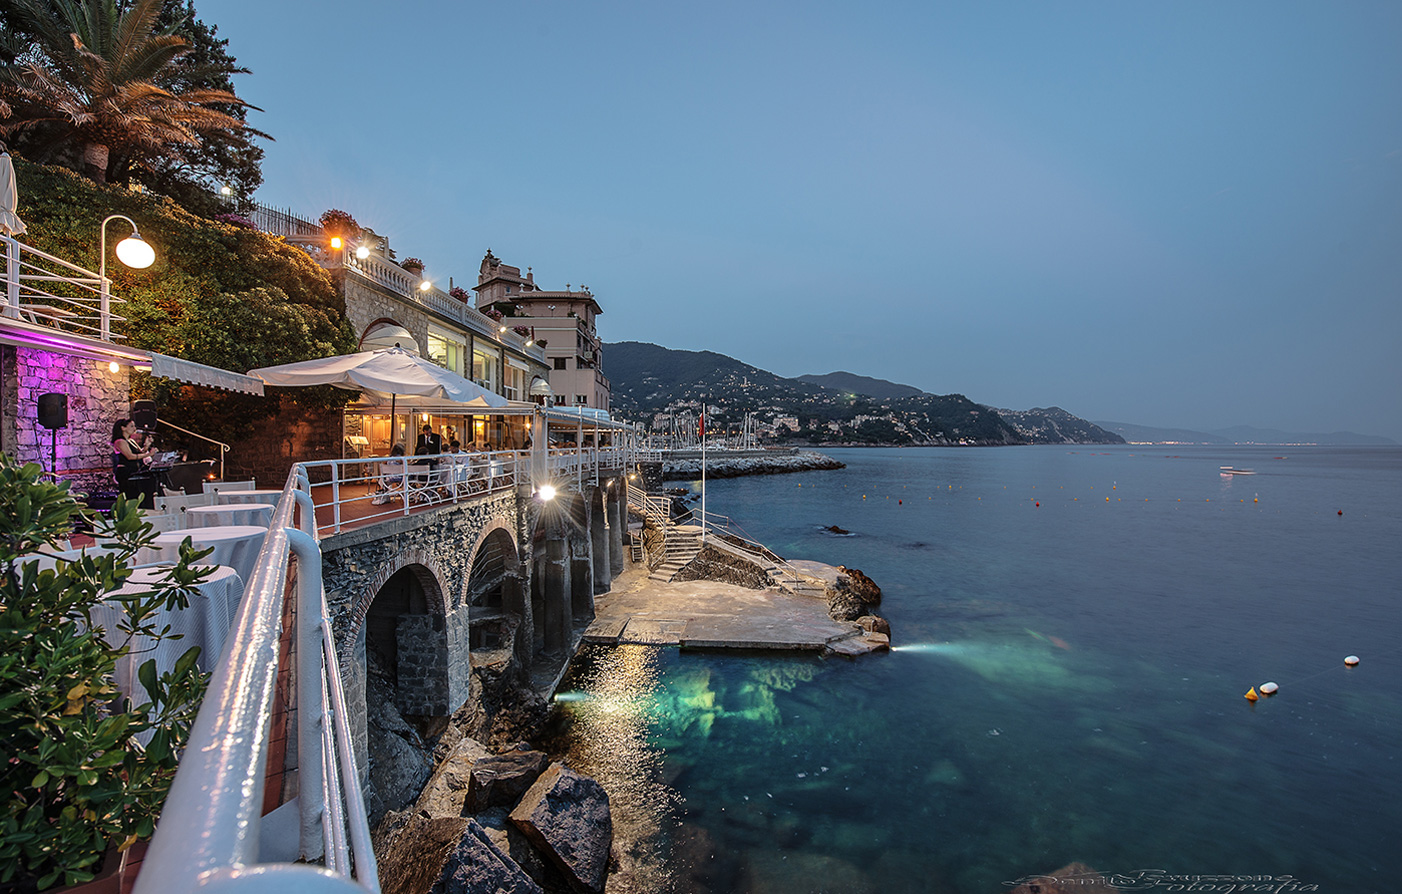 Excelsior Palace Hotel  in Rapallo